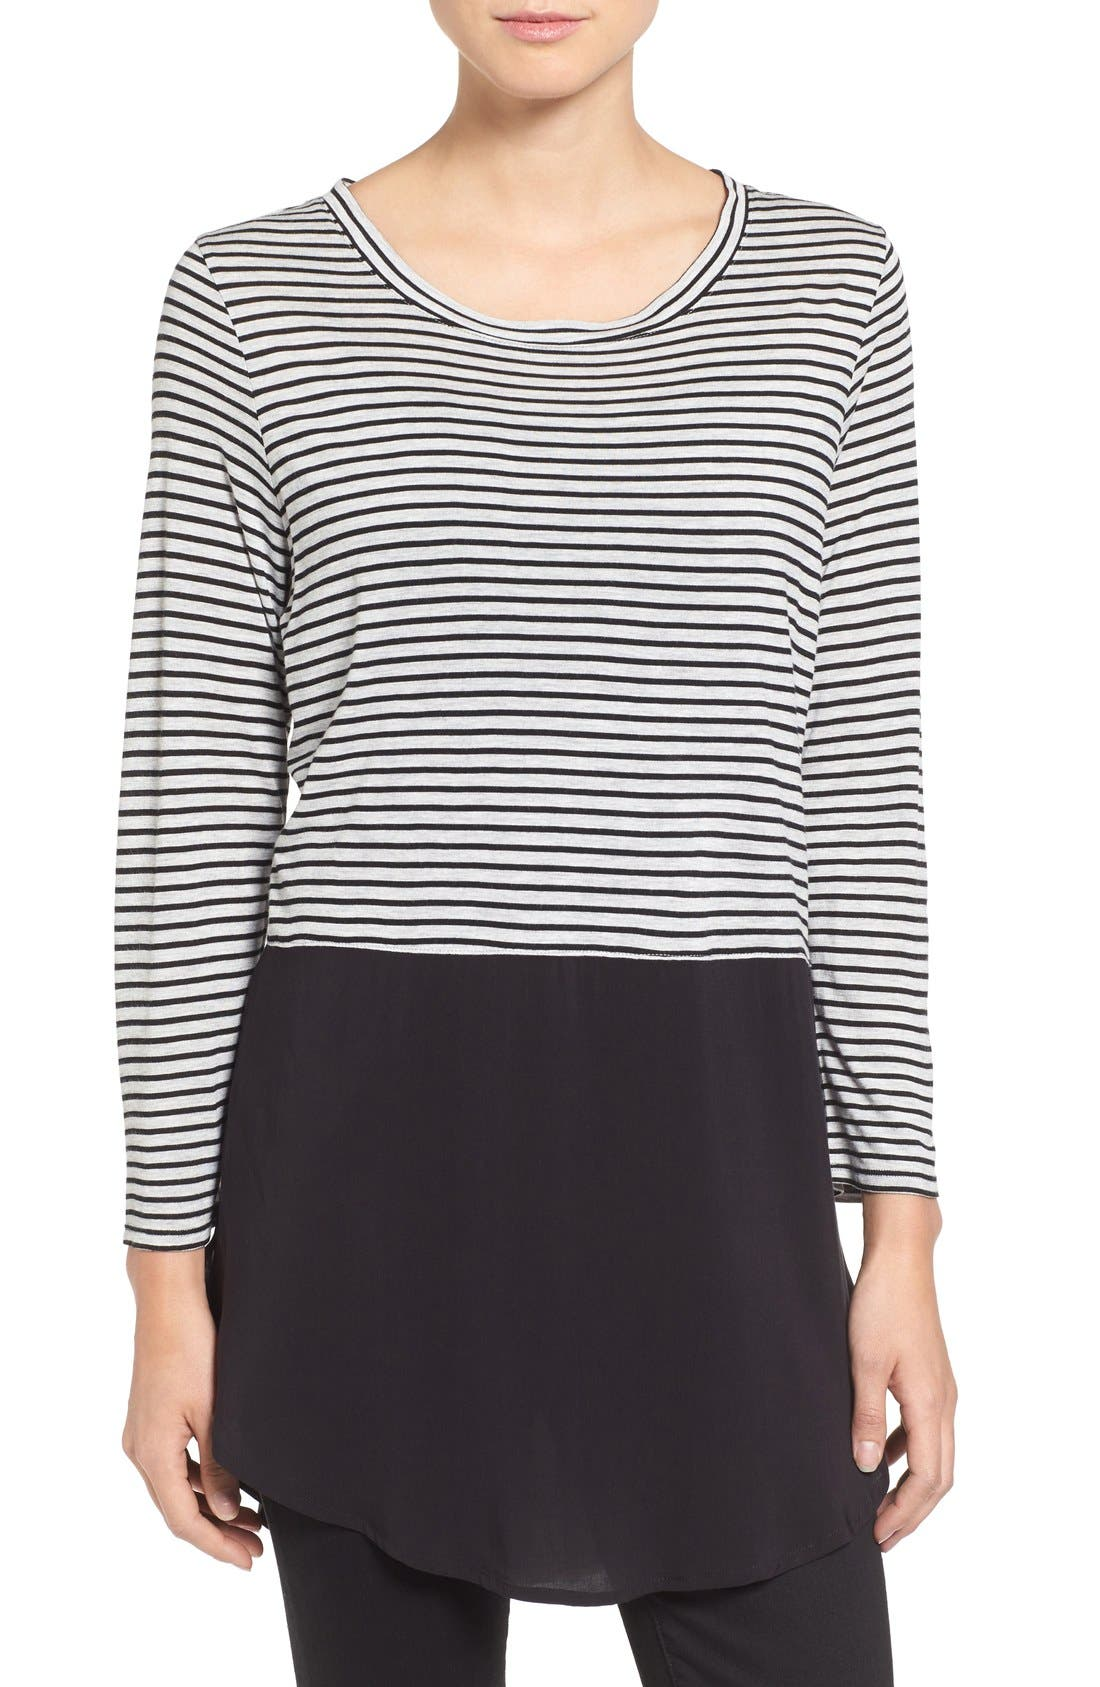 Alternate Image 1 Selected - Two by Vince Camuto 'Anchor Stripe' Mixed Media Tunic